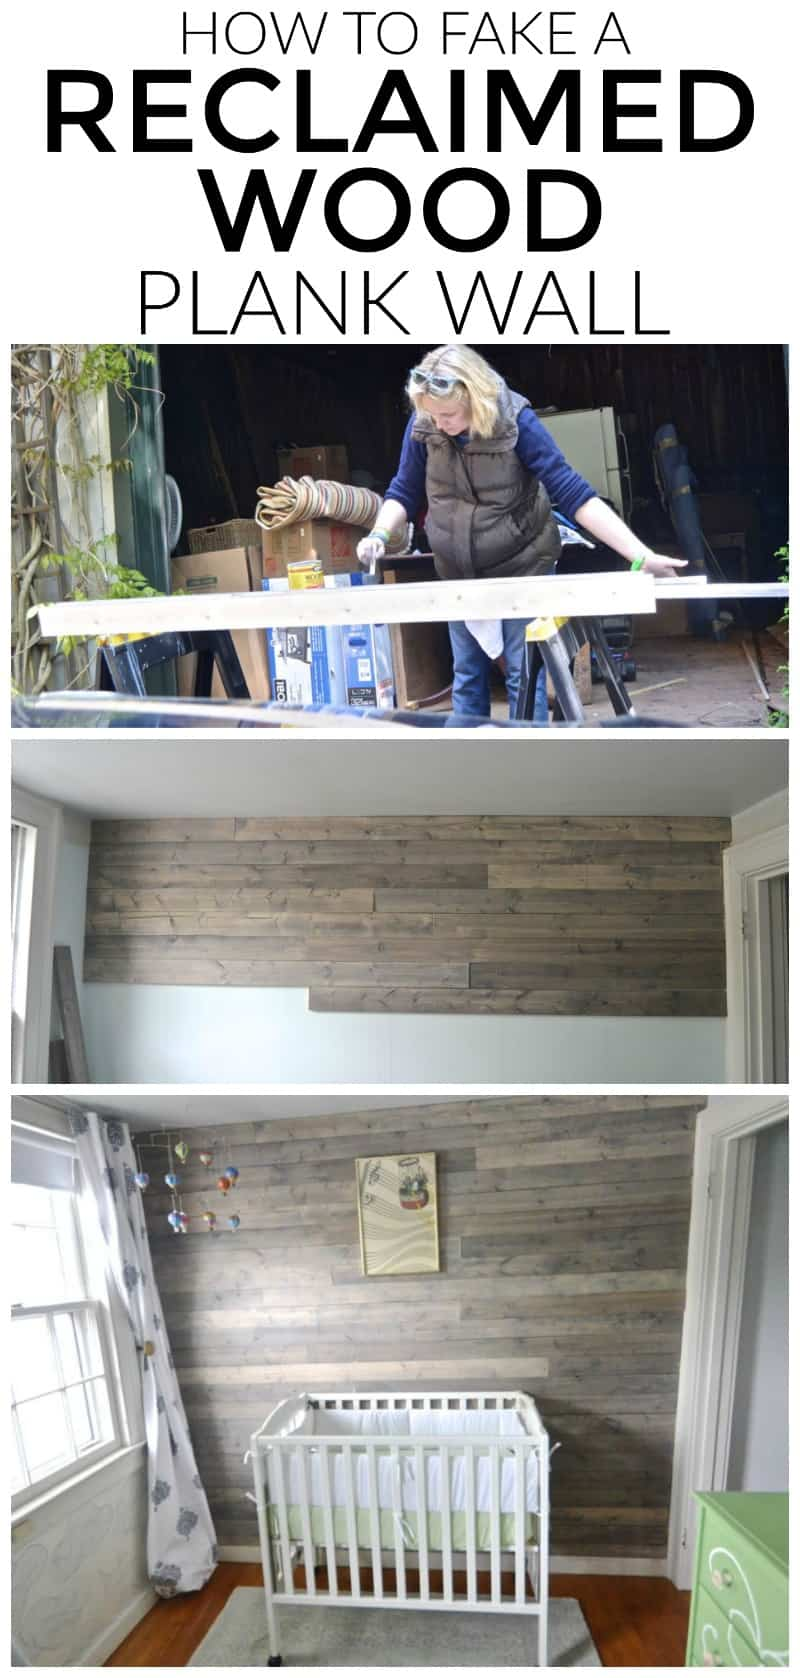 Fake a fun weathered reclaimed wood plank wall without dealing with finding clean and suitable old wood.